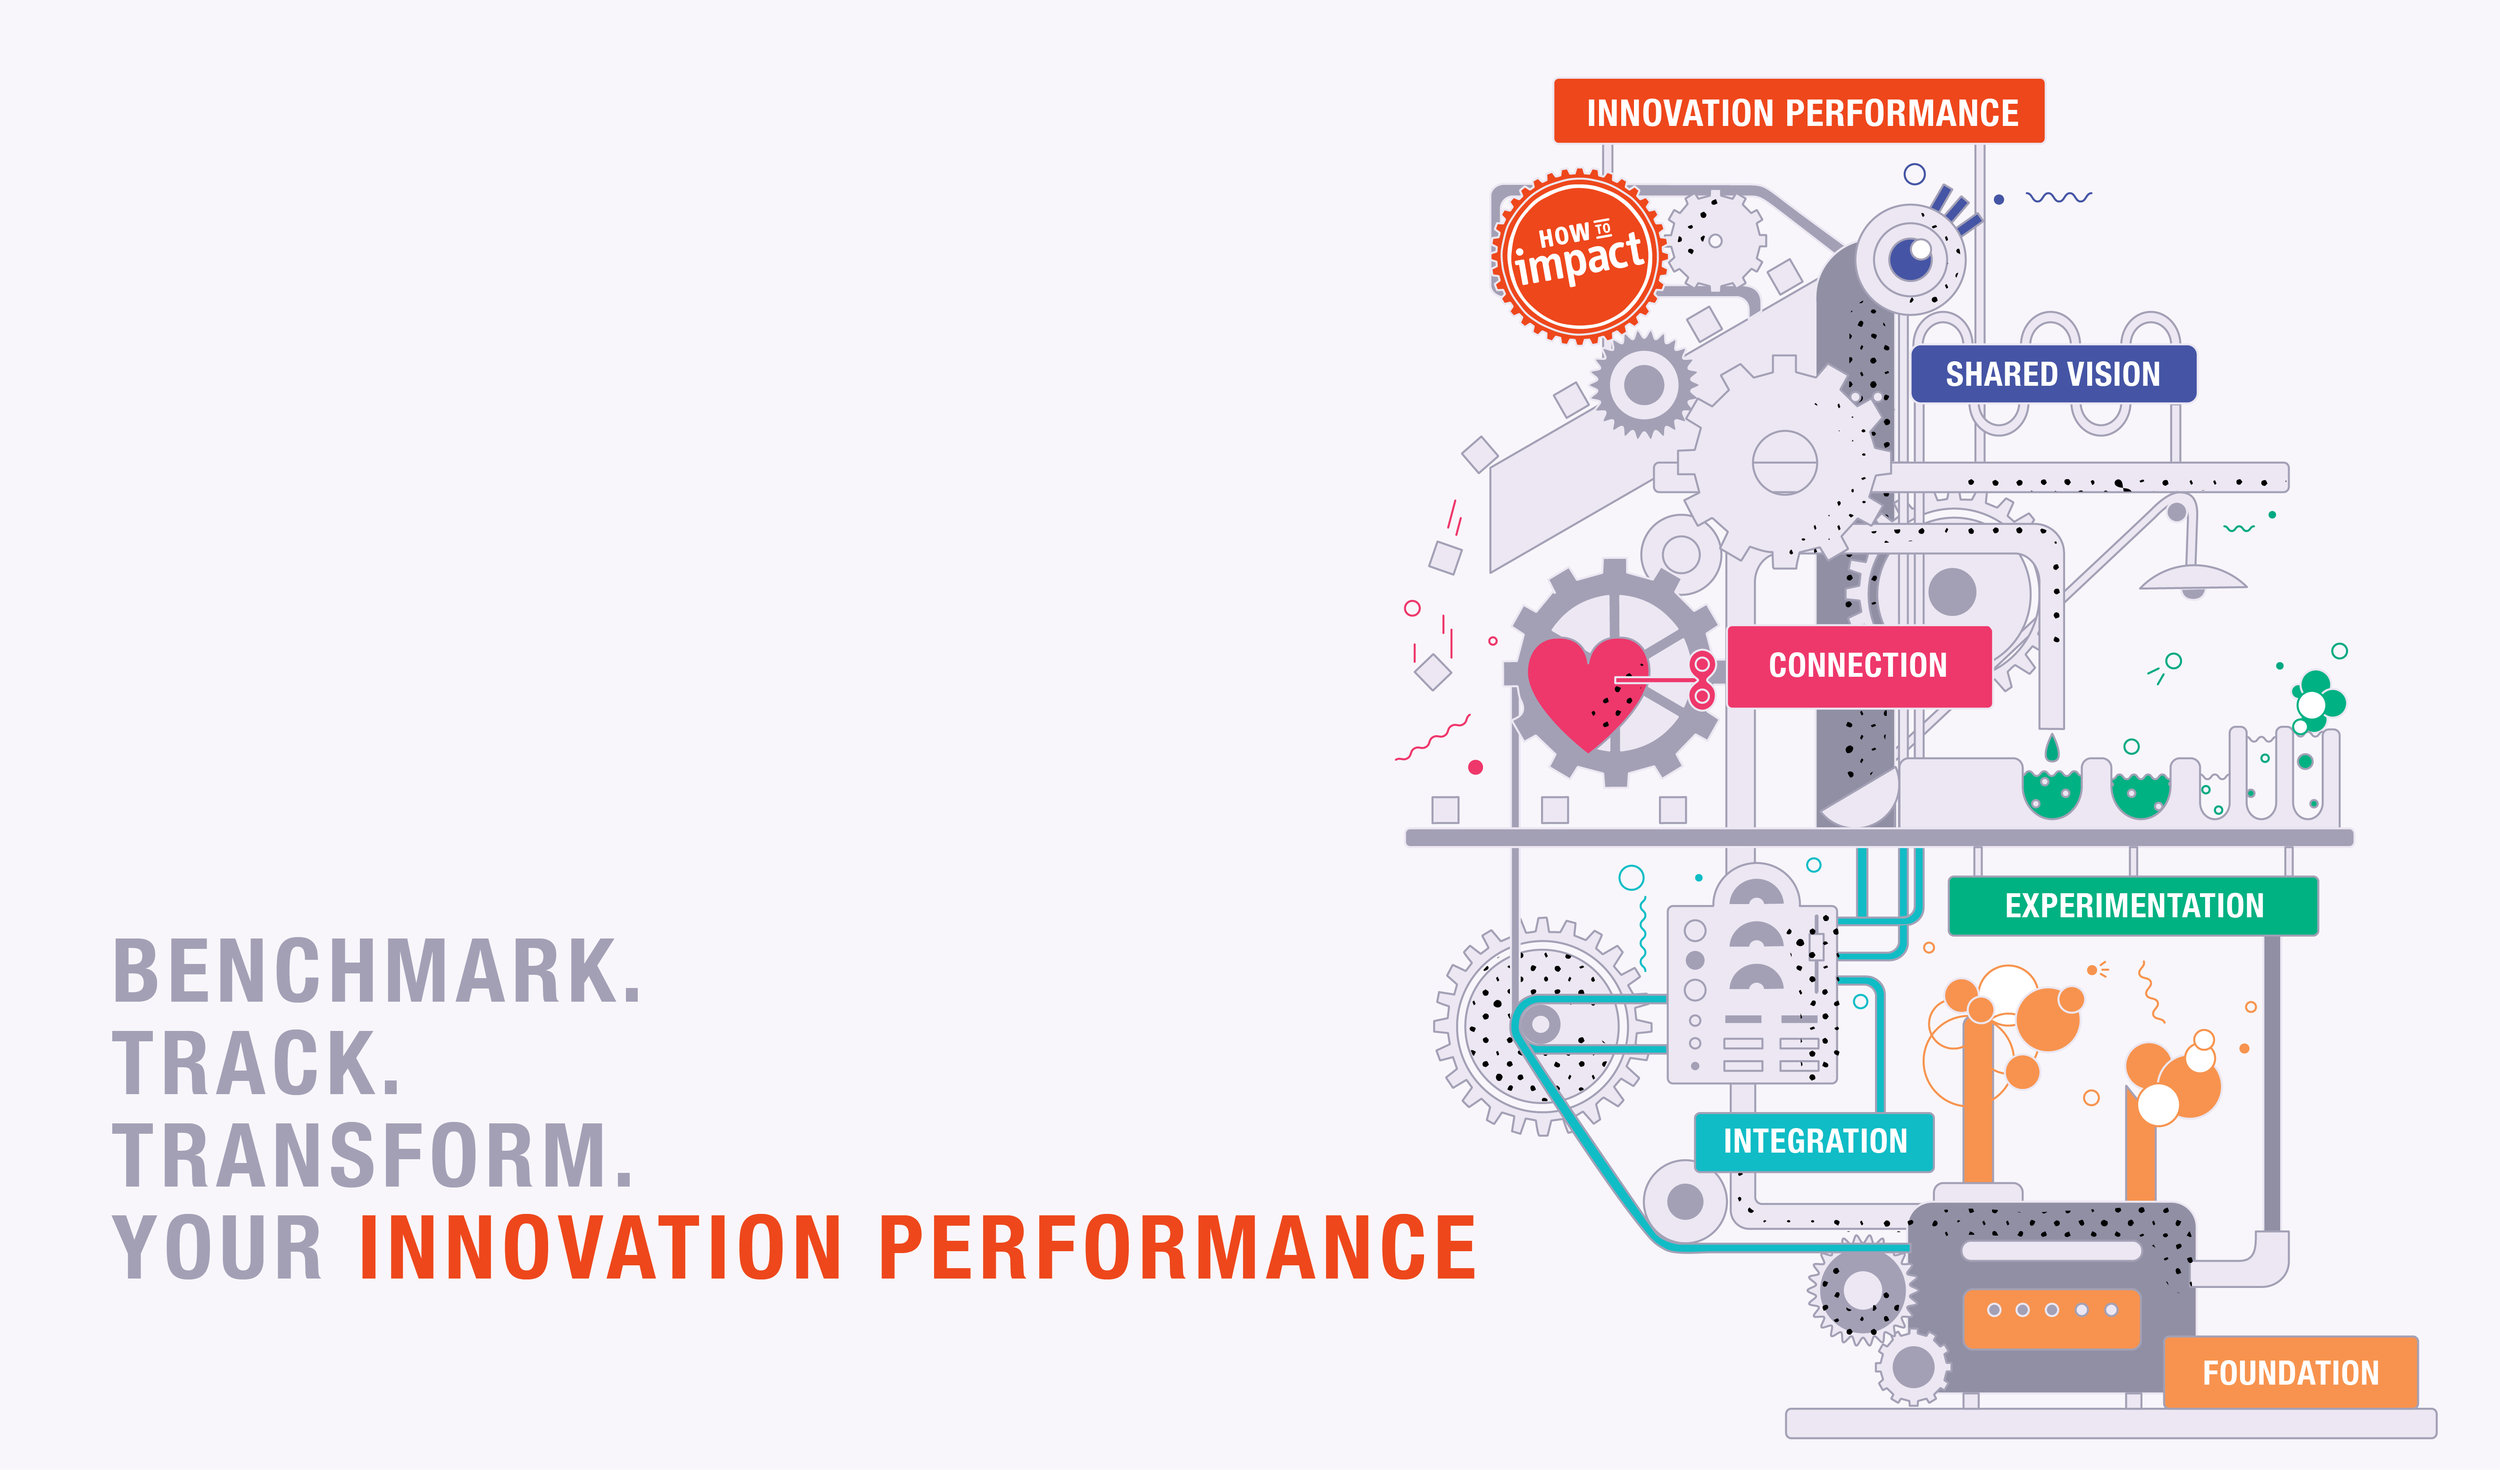 innovation performance_web-19.jpg